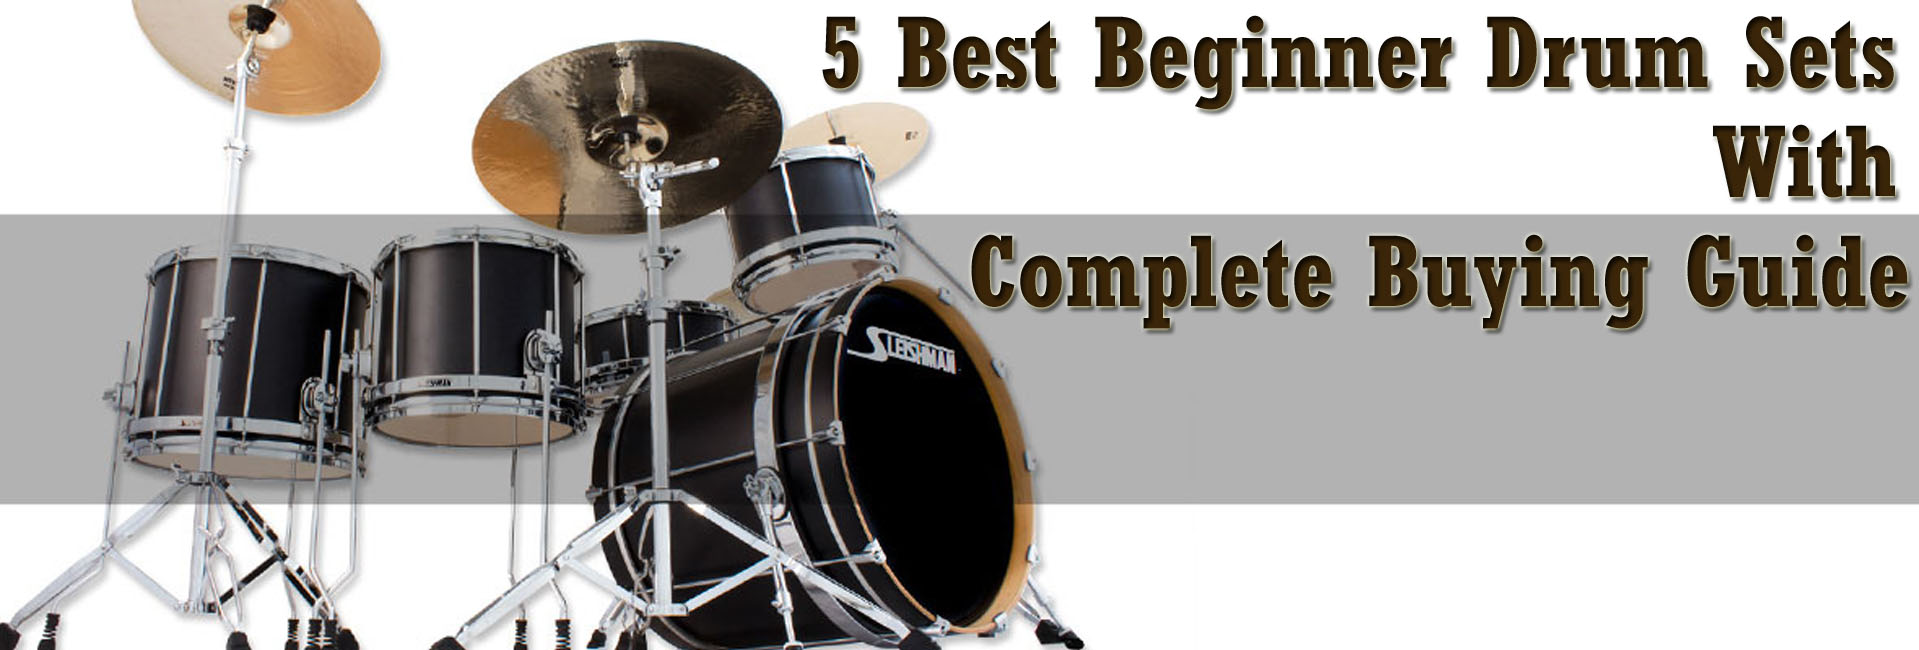 5 Best Beginner Drum Sets with Complete Buying Guide